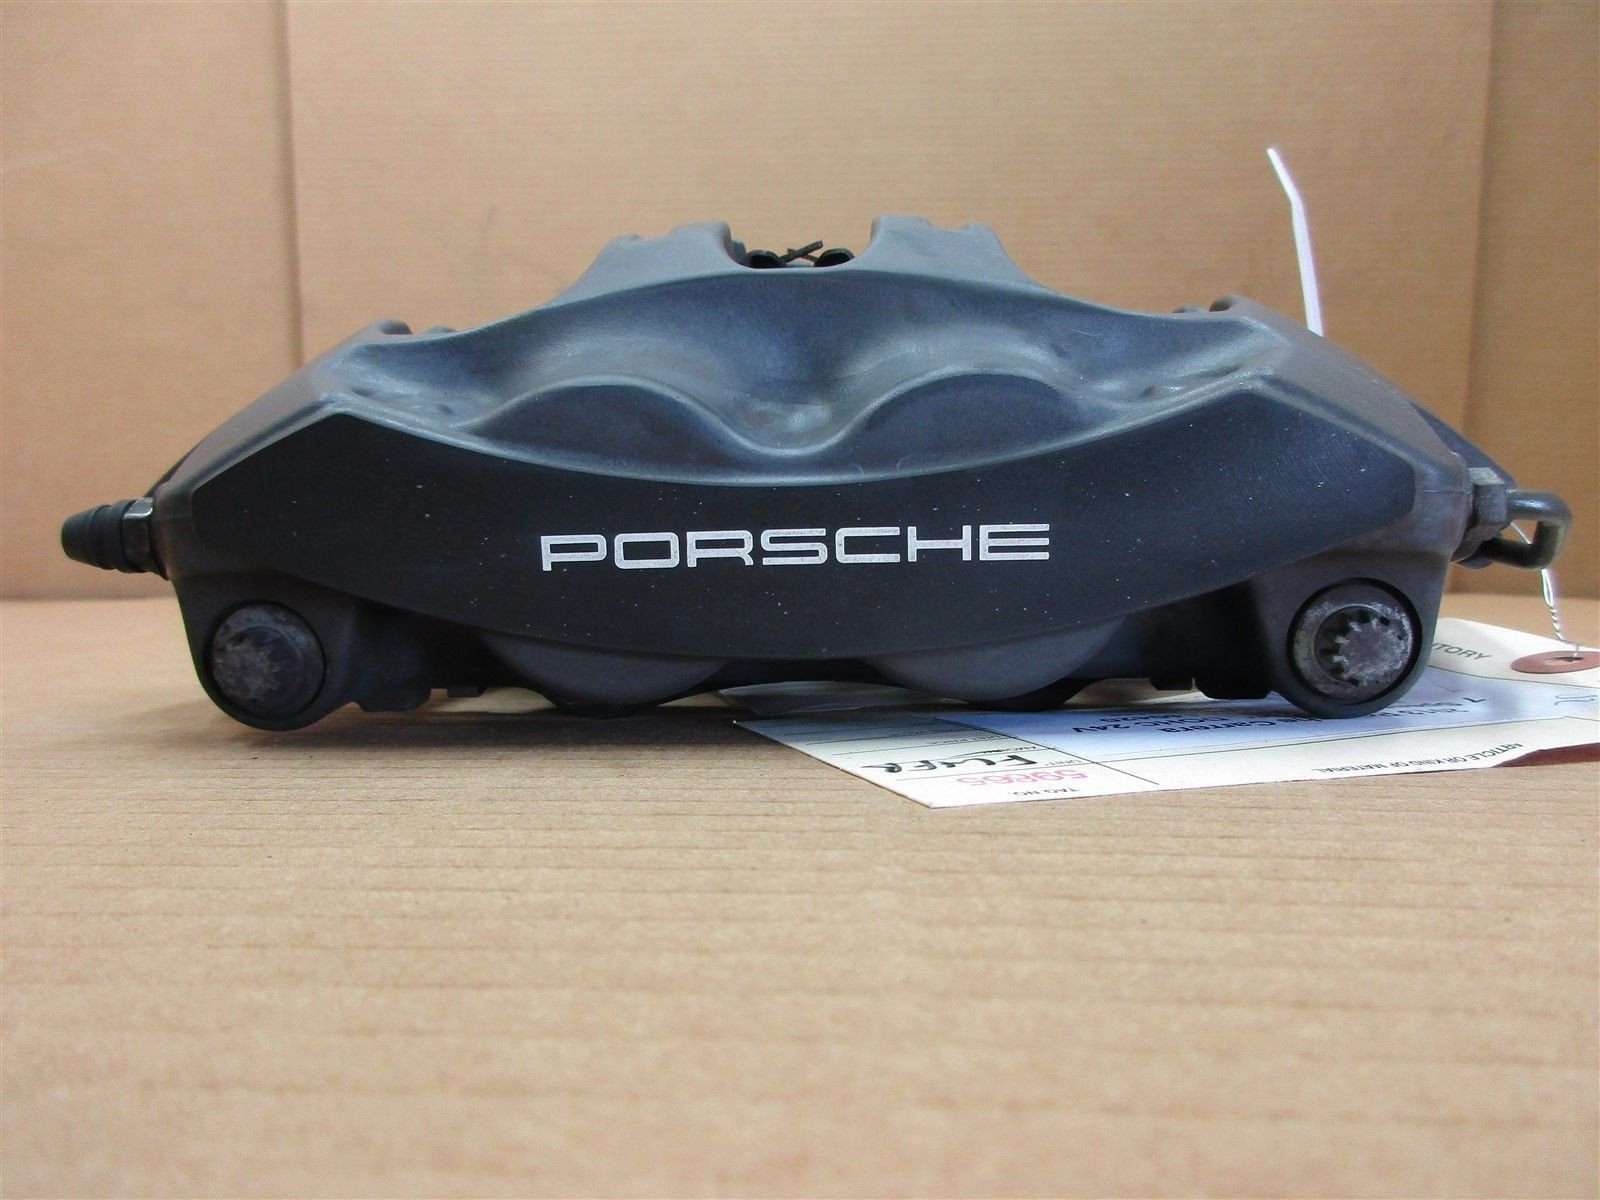 13 Carrera 911 Porsche 991 L R FRONT BRAKE CALIPERS 997351421 997351422 33,116